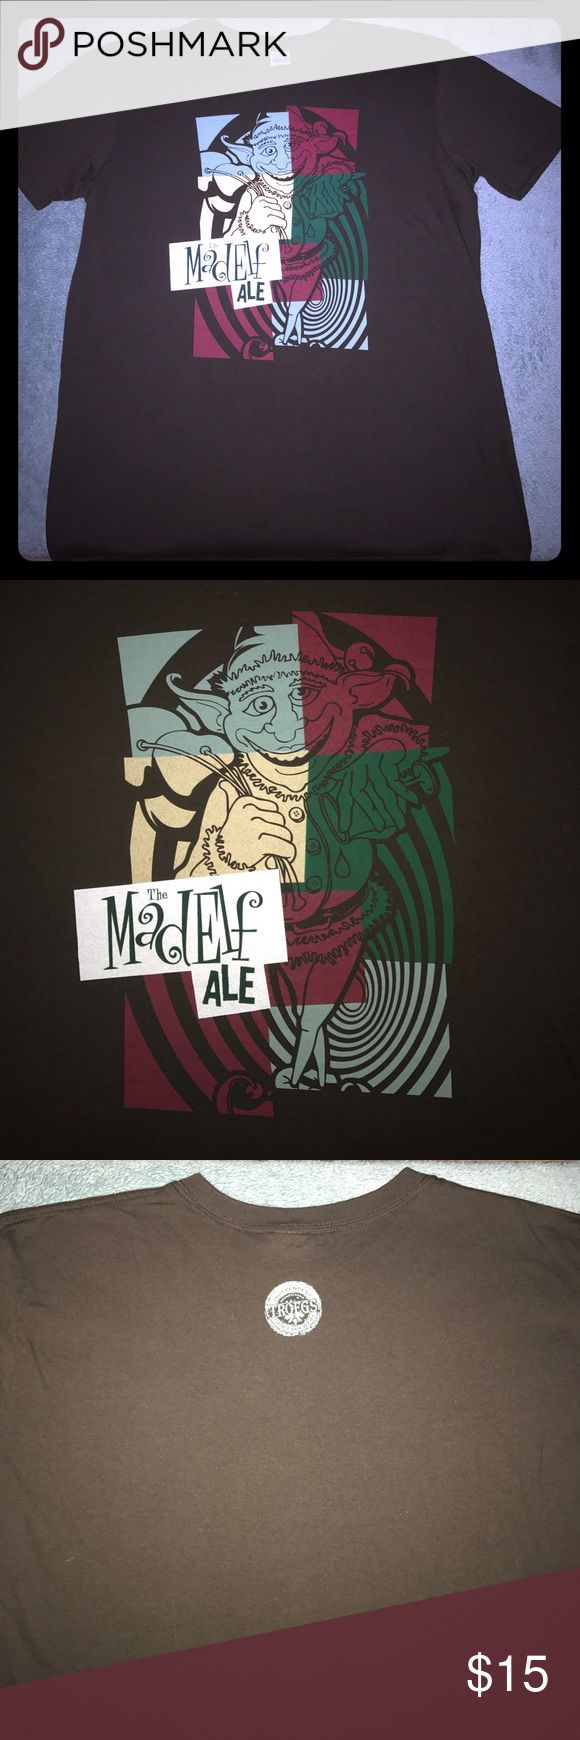 """Troegs Craft Beer """"The Mad Elf"""" Ale Men's T-Shirt For sale is a Size Large, NWOT, Troegs Craft Beer """"The Mad Elf"""" Ale Men's T-Shirt. Shirt is dark brown and features the classic logo of the Seasonal favorite beer, Mad Elf! A must have for the craft beer lover in your family! Gildan Shirts Tees - Short Sleeve"""